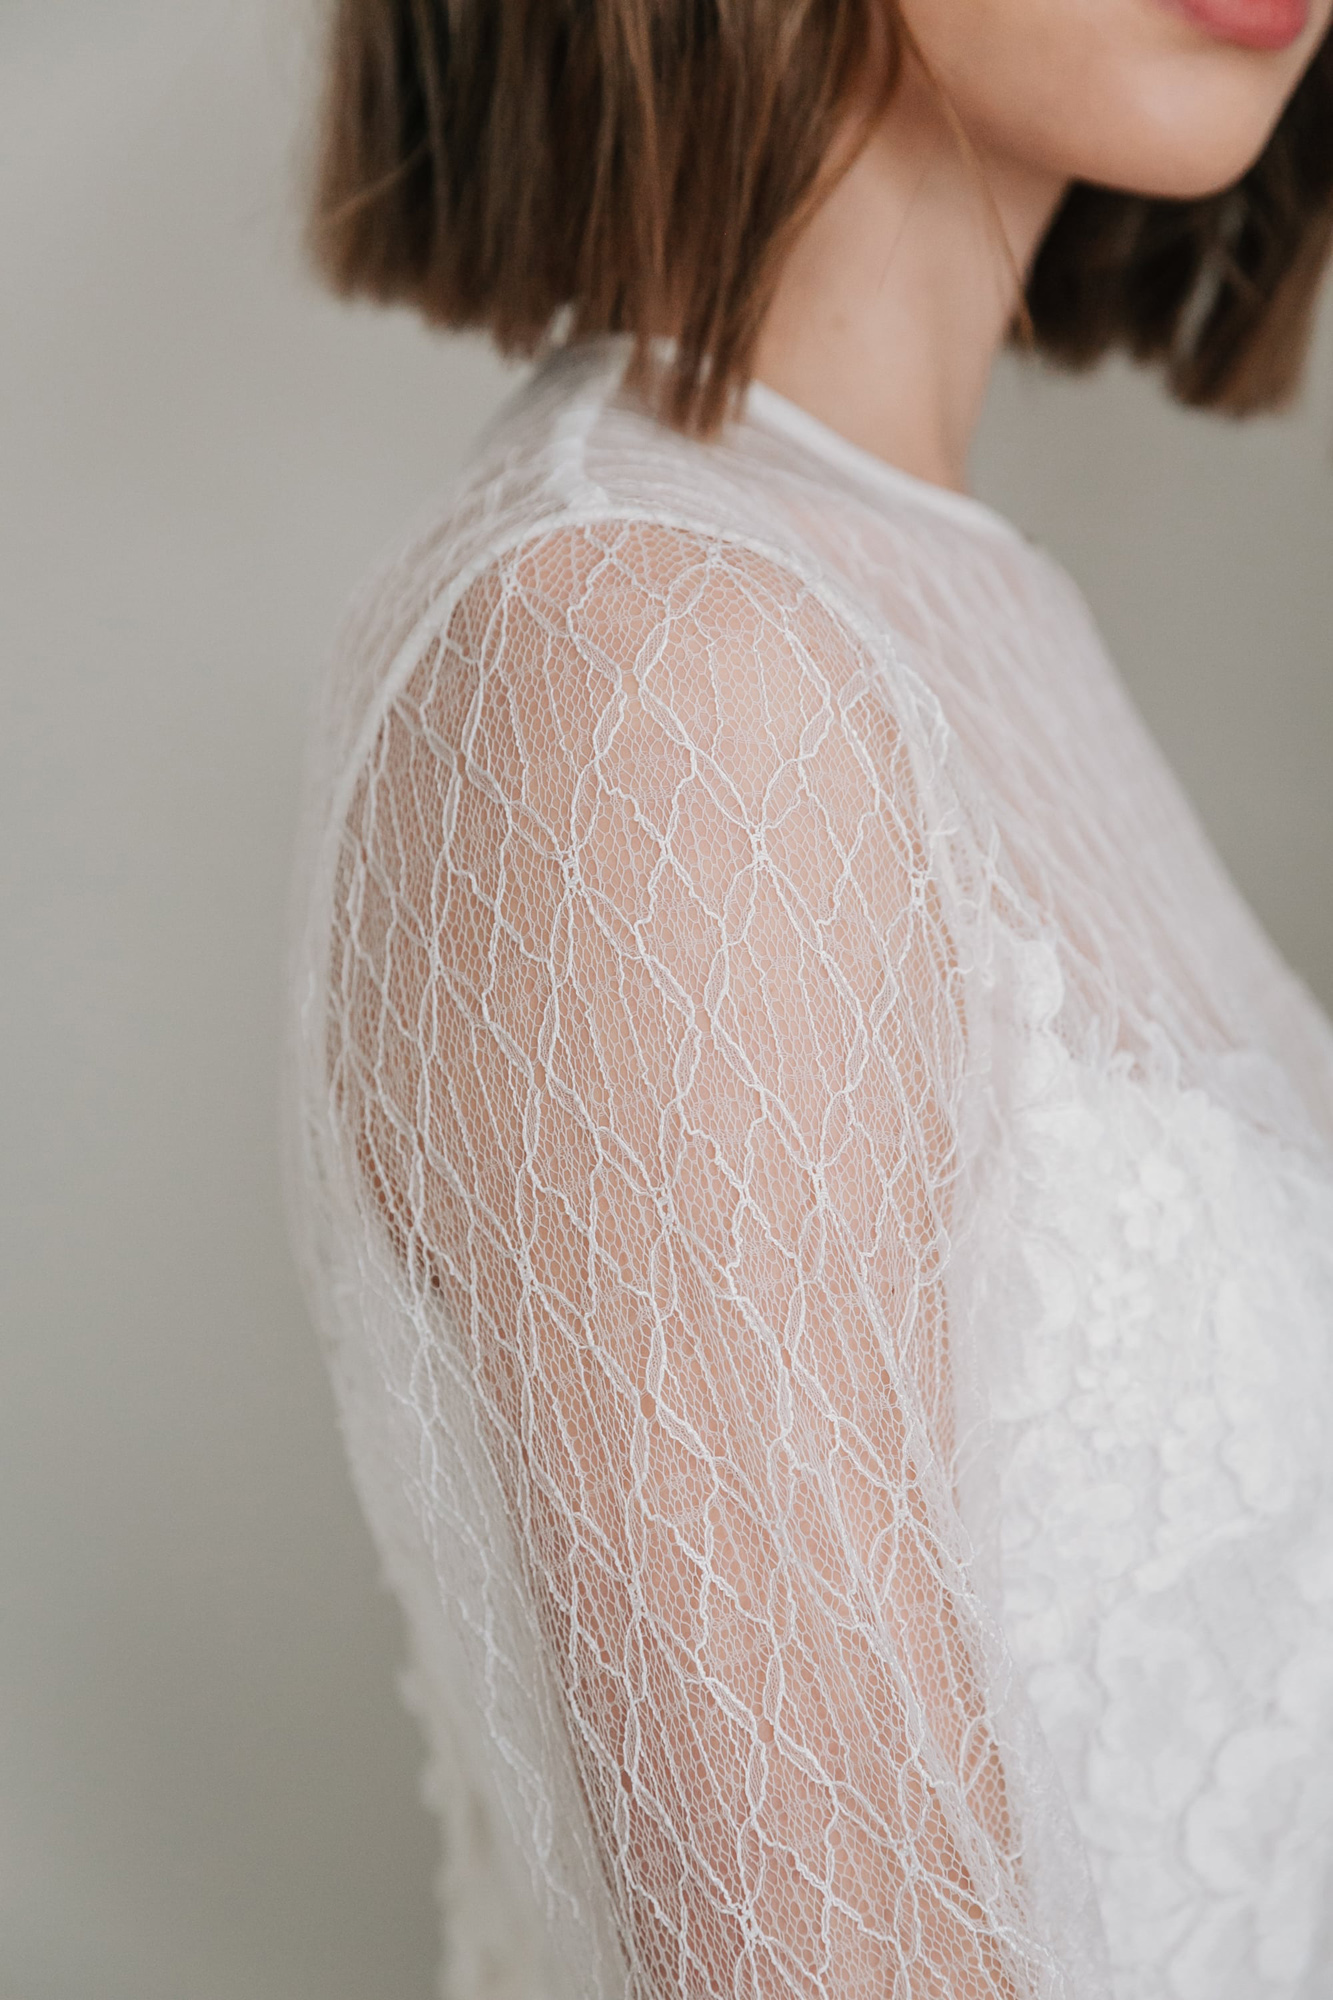 Kate-Beaumont-Sheffield-Geranium-Applique-Lace-Silk-Modern-Minimal-Long-Sleeved-Wedding-Gown-8.jpg